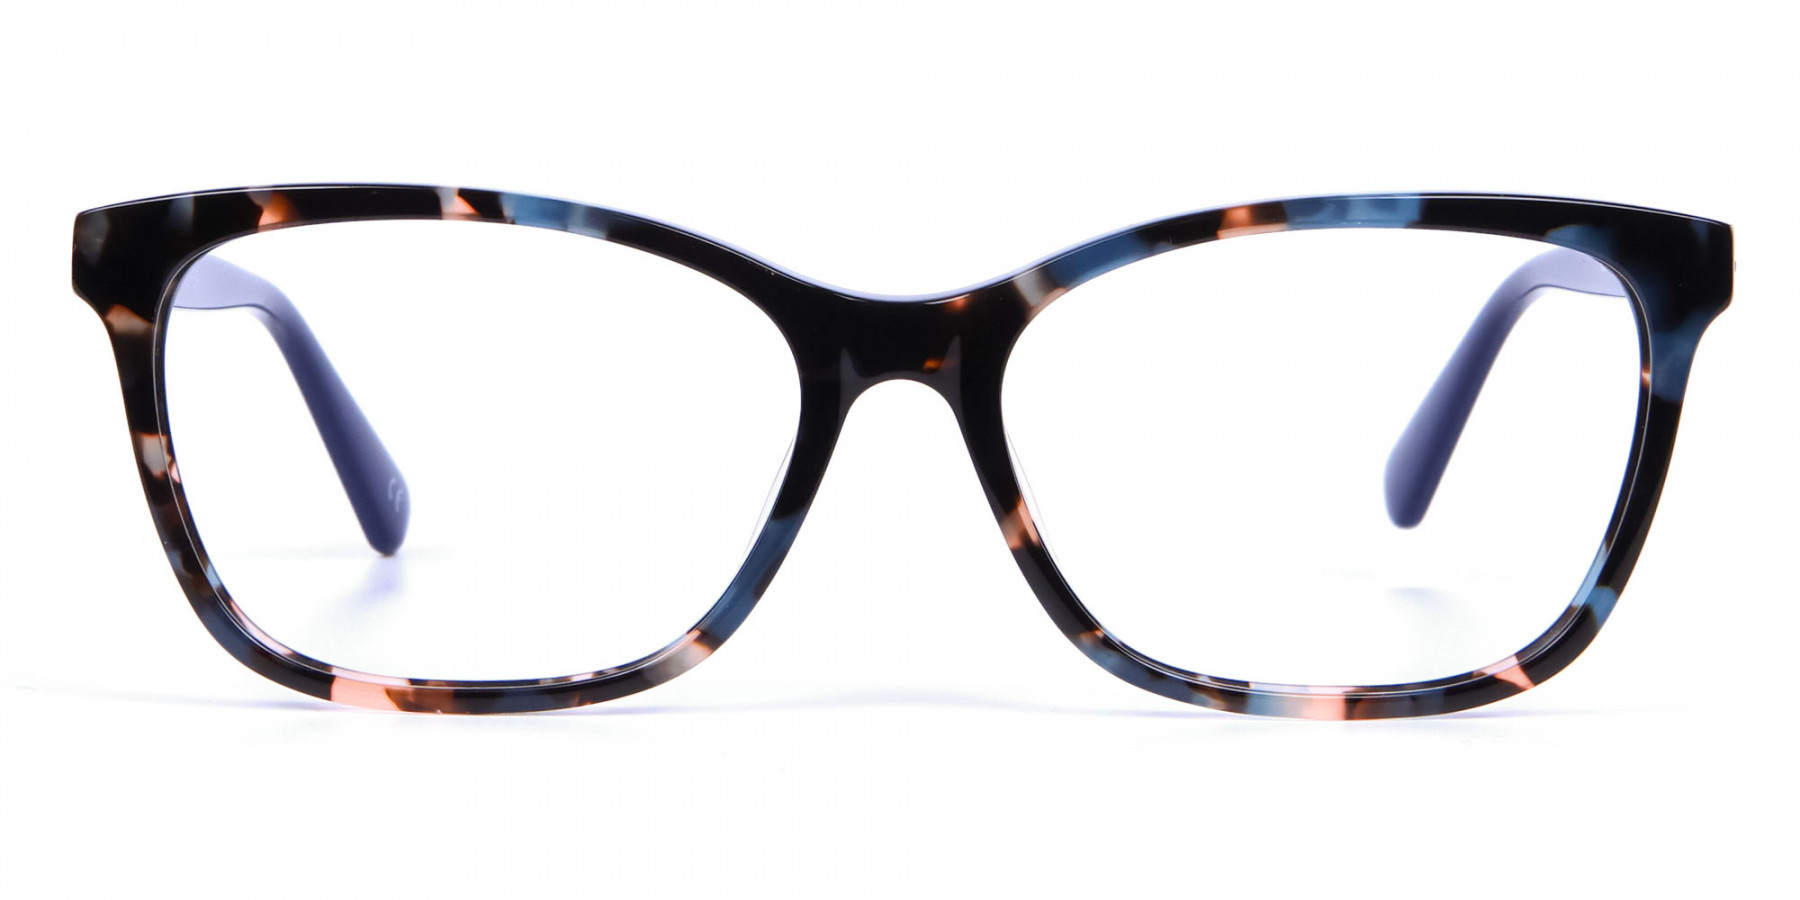 Blue Tortoiseshell Cat Eye Glasses for Women